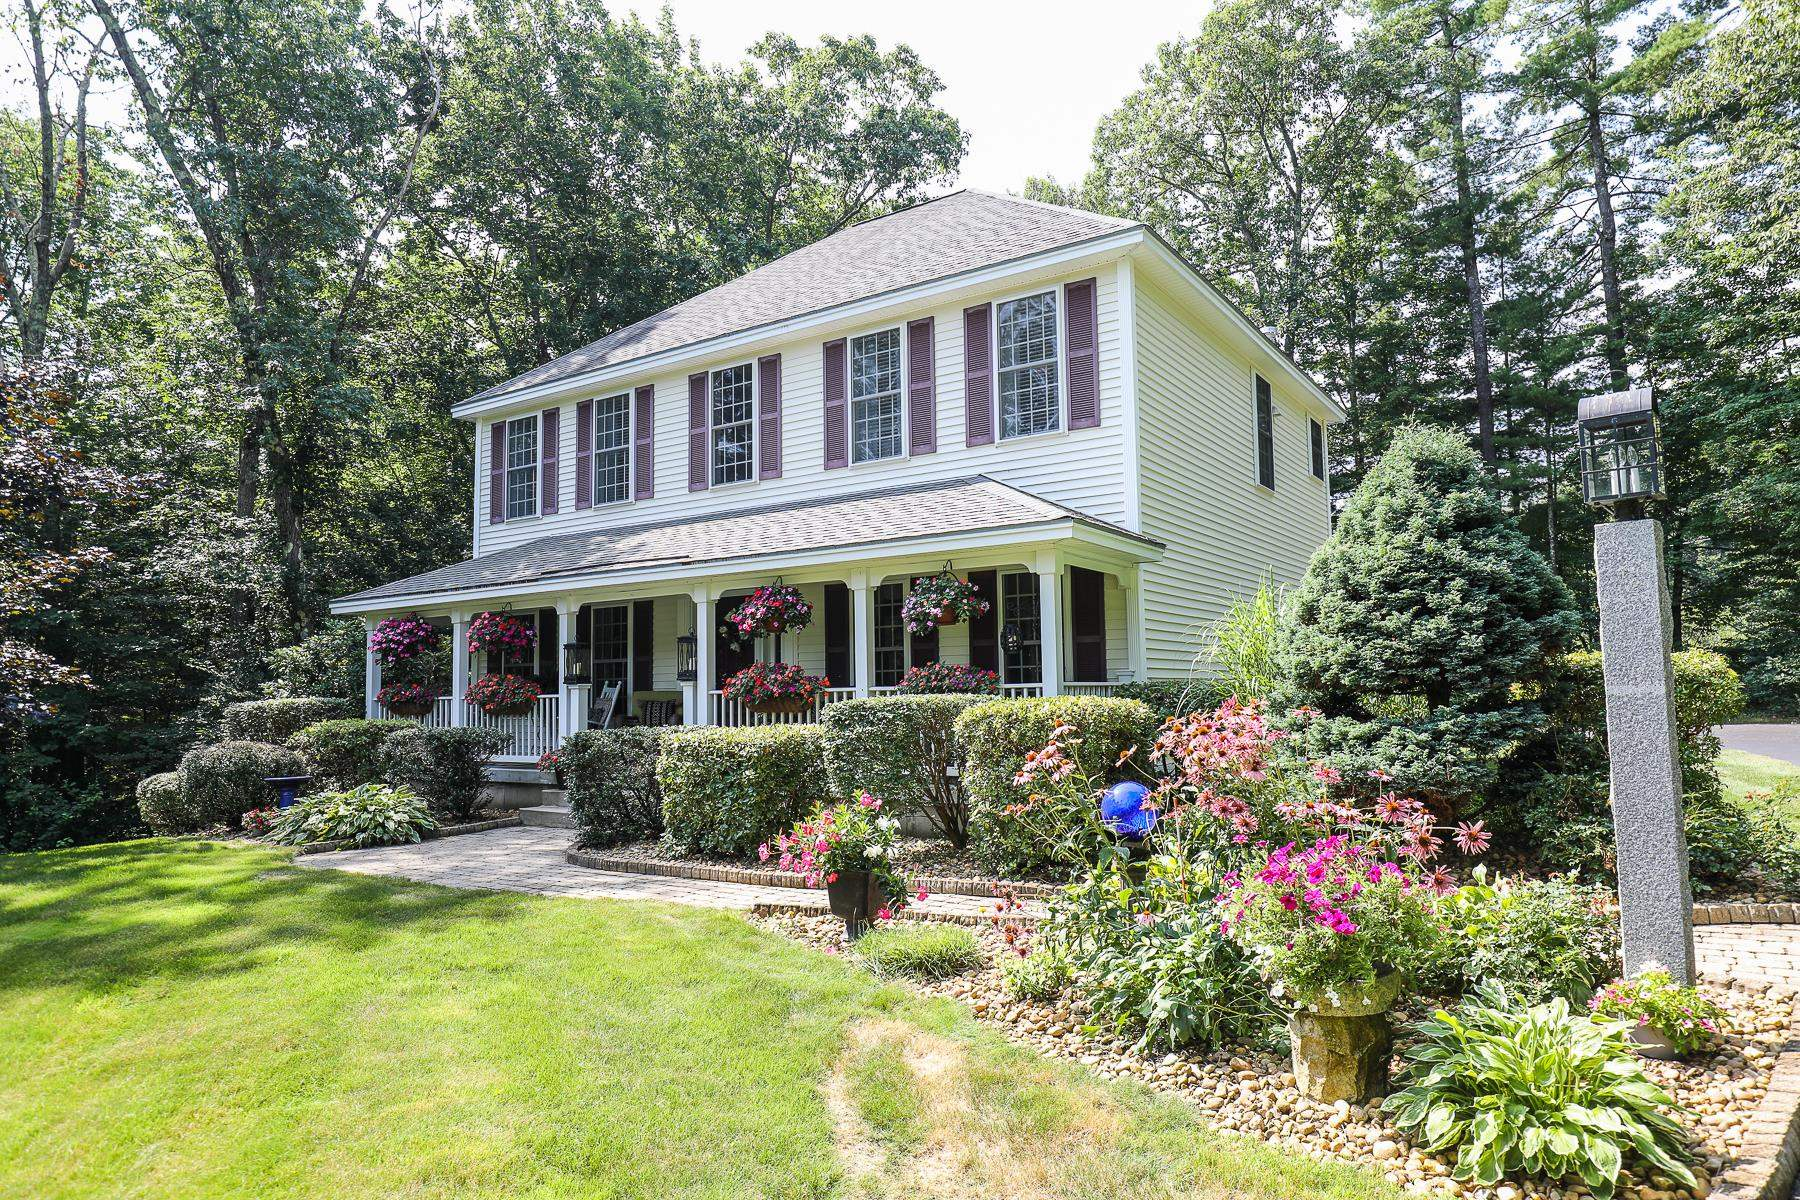 Photo of 31 Longbrook Road Goffstown NH 03045